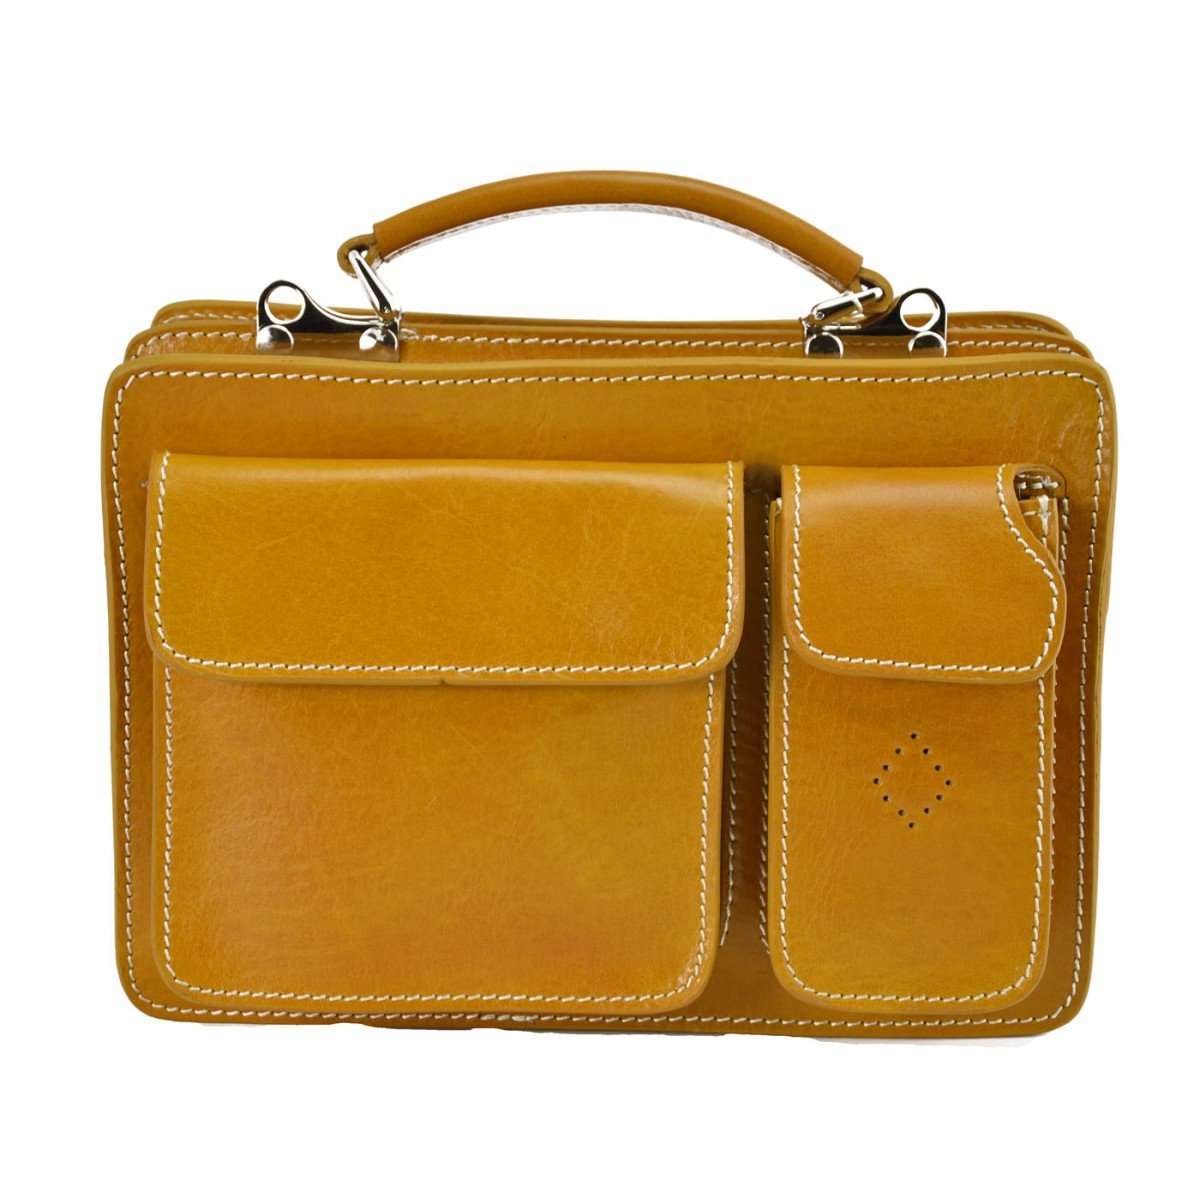 Made In Italy Genuine Leather Business Bag Mod. Mini Color Yellow - Business Bag B01N6Y1GI4